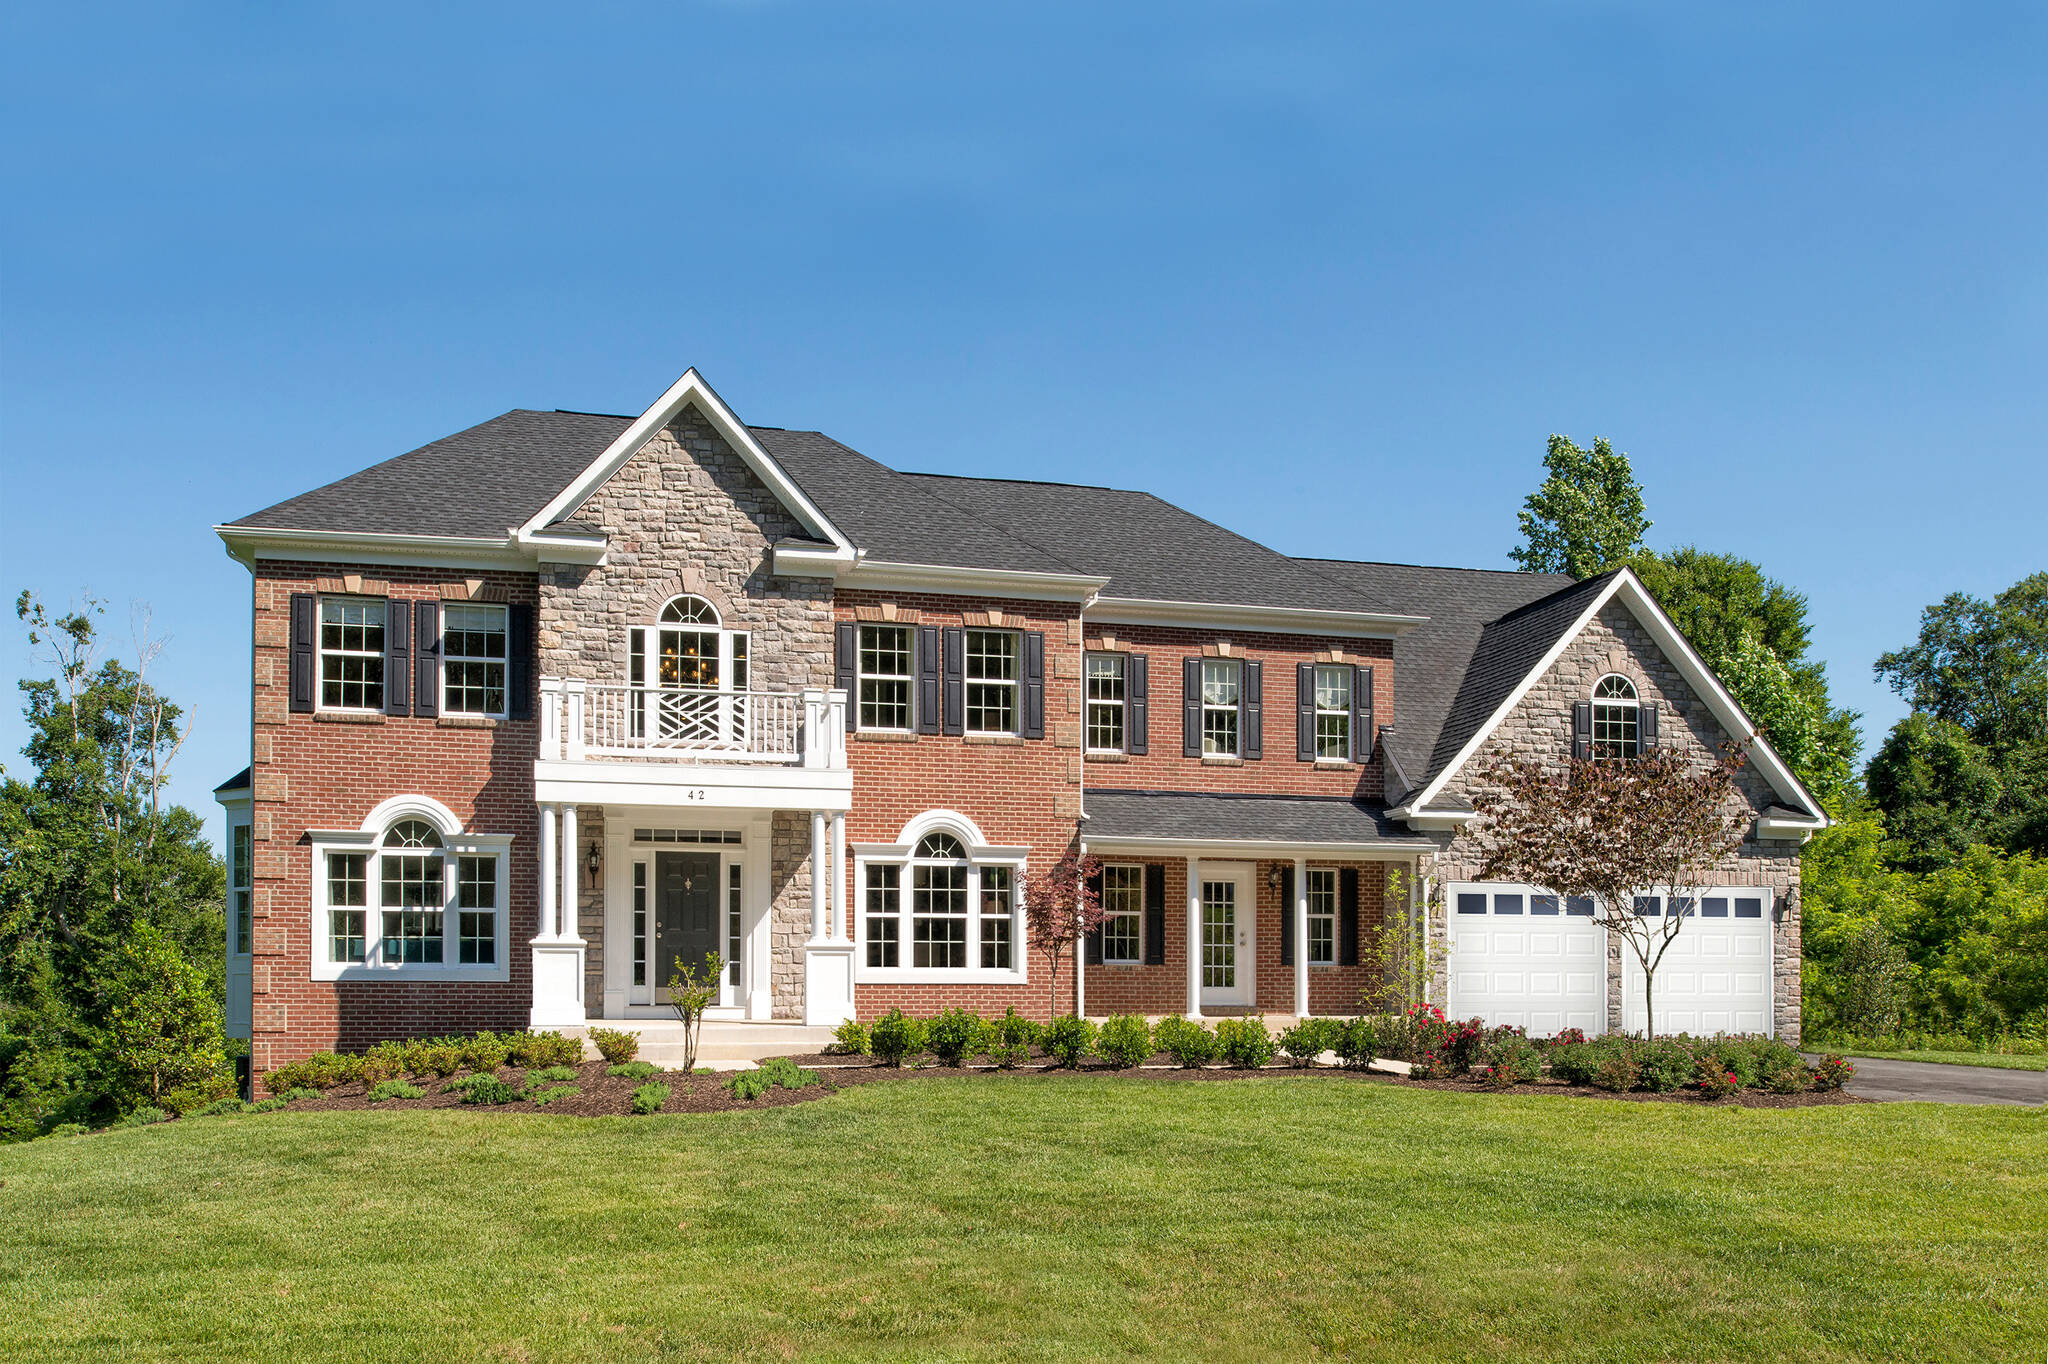 wisconsin traditional new homes at reserves at wheatlands in virginia